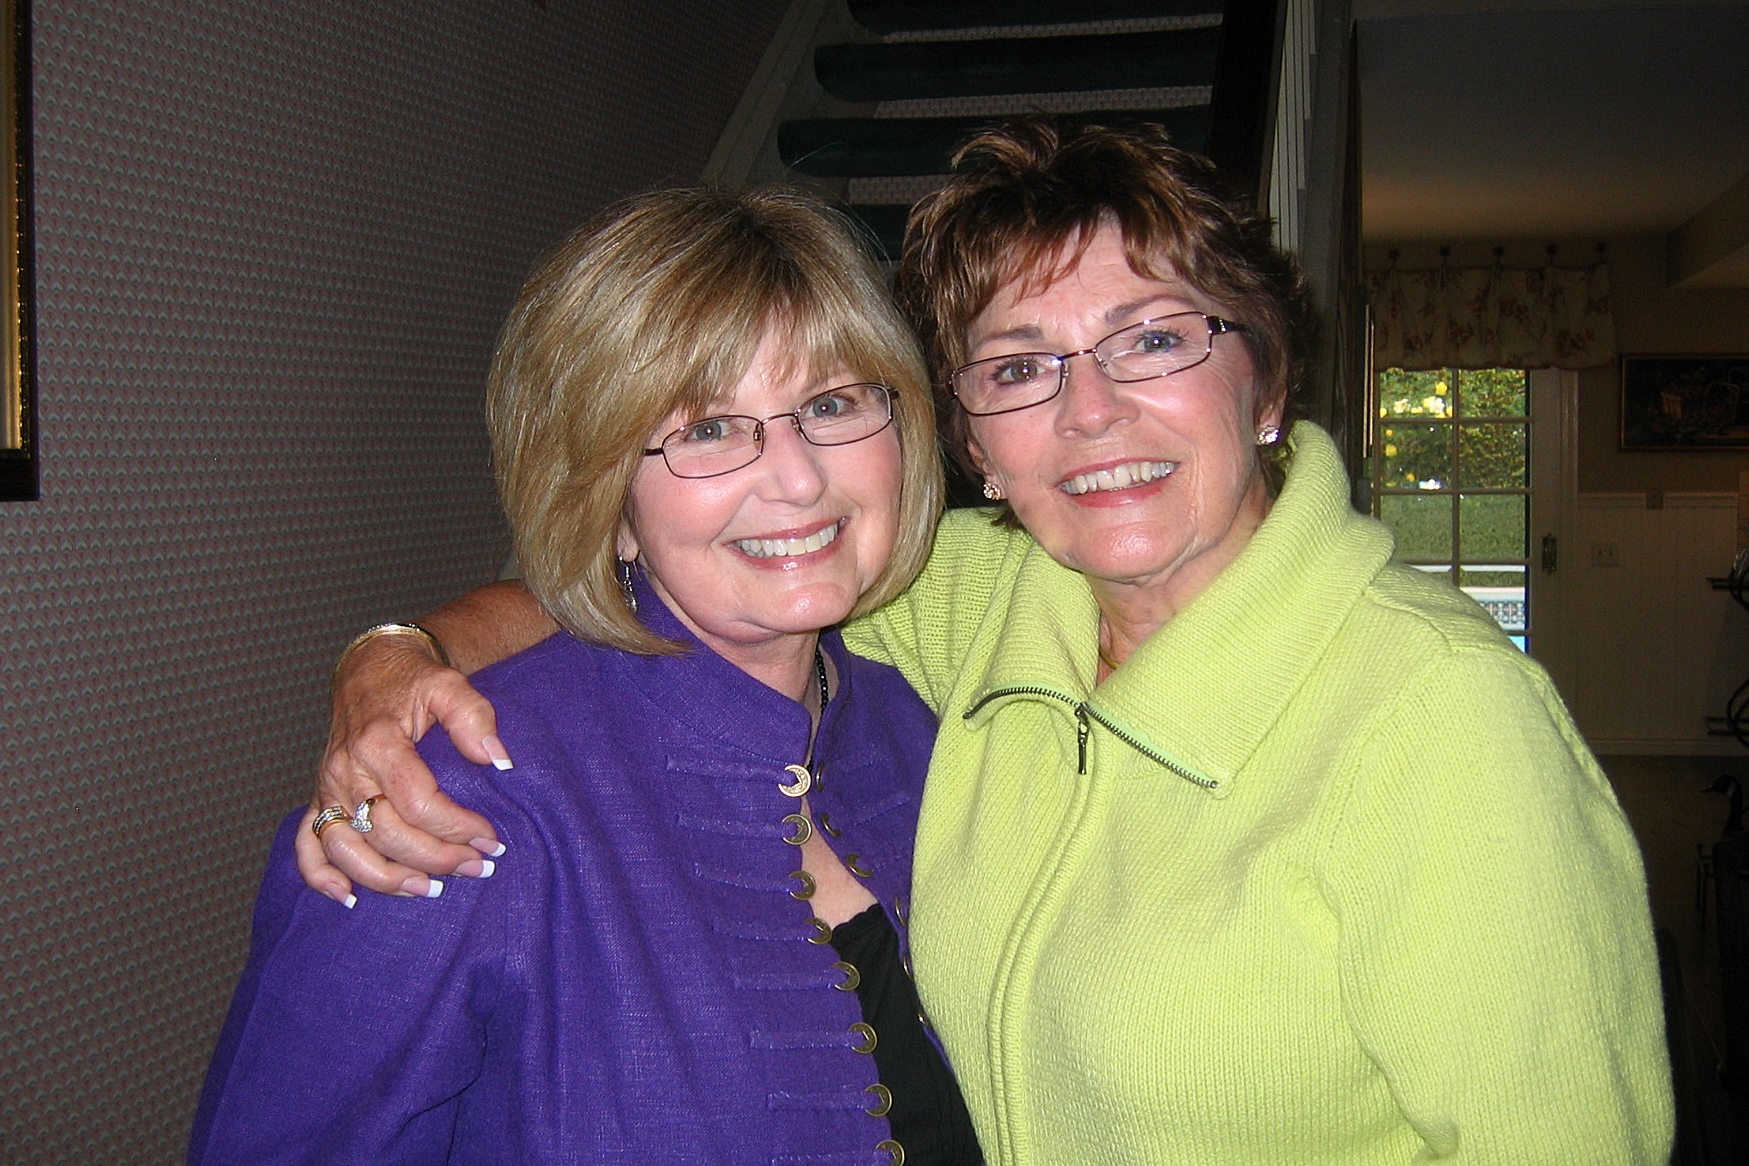 Susie Kimes (president from 1985-1995) and Ginger Bertoni (president from 1995-2007)